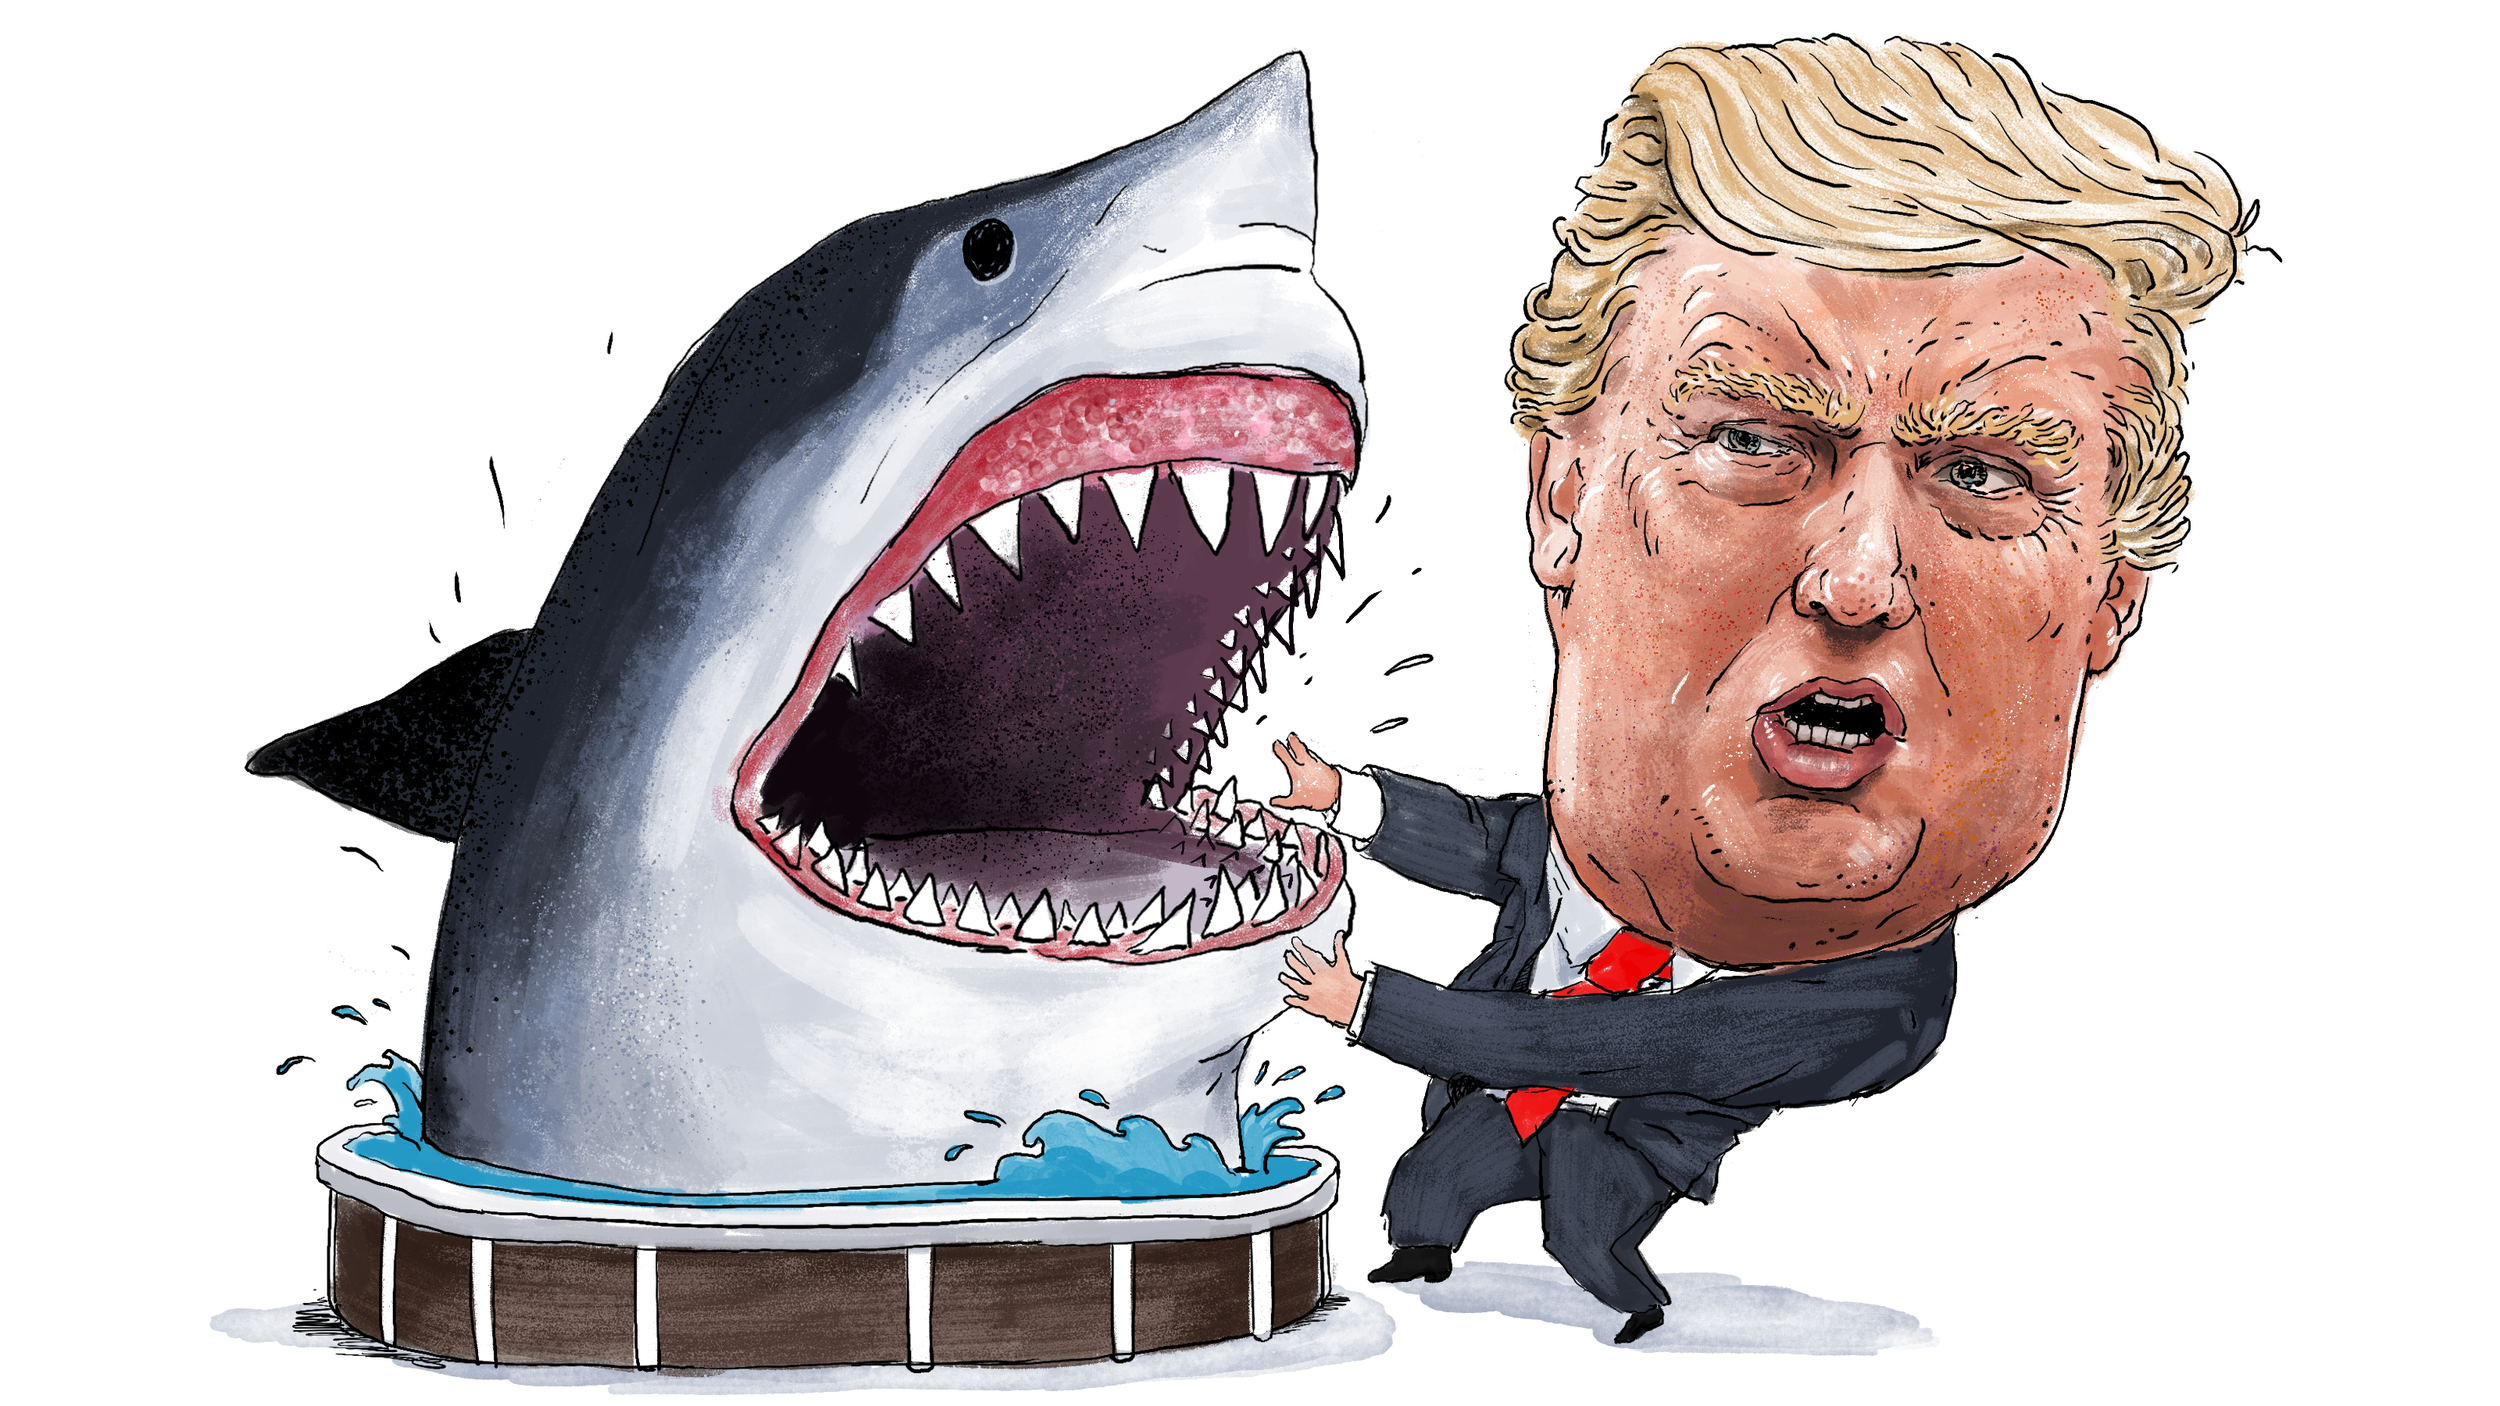 What Does Donald Trump See When He Looks at the Sharks?